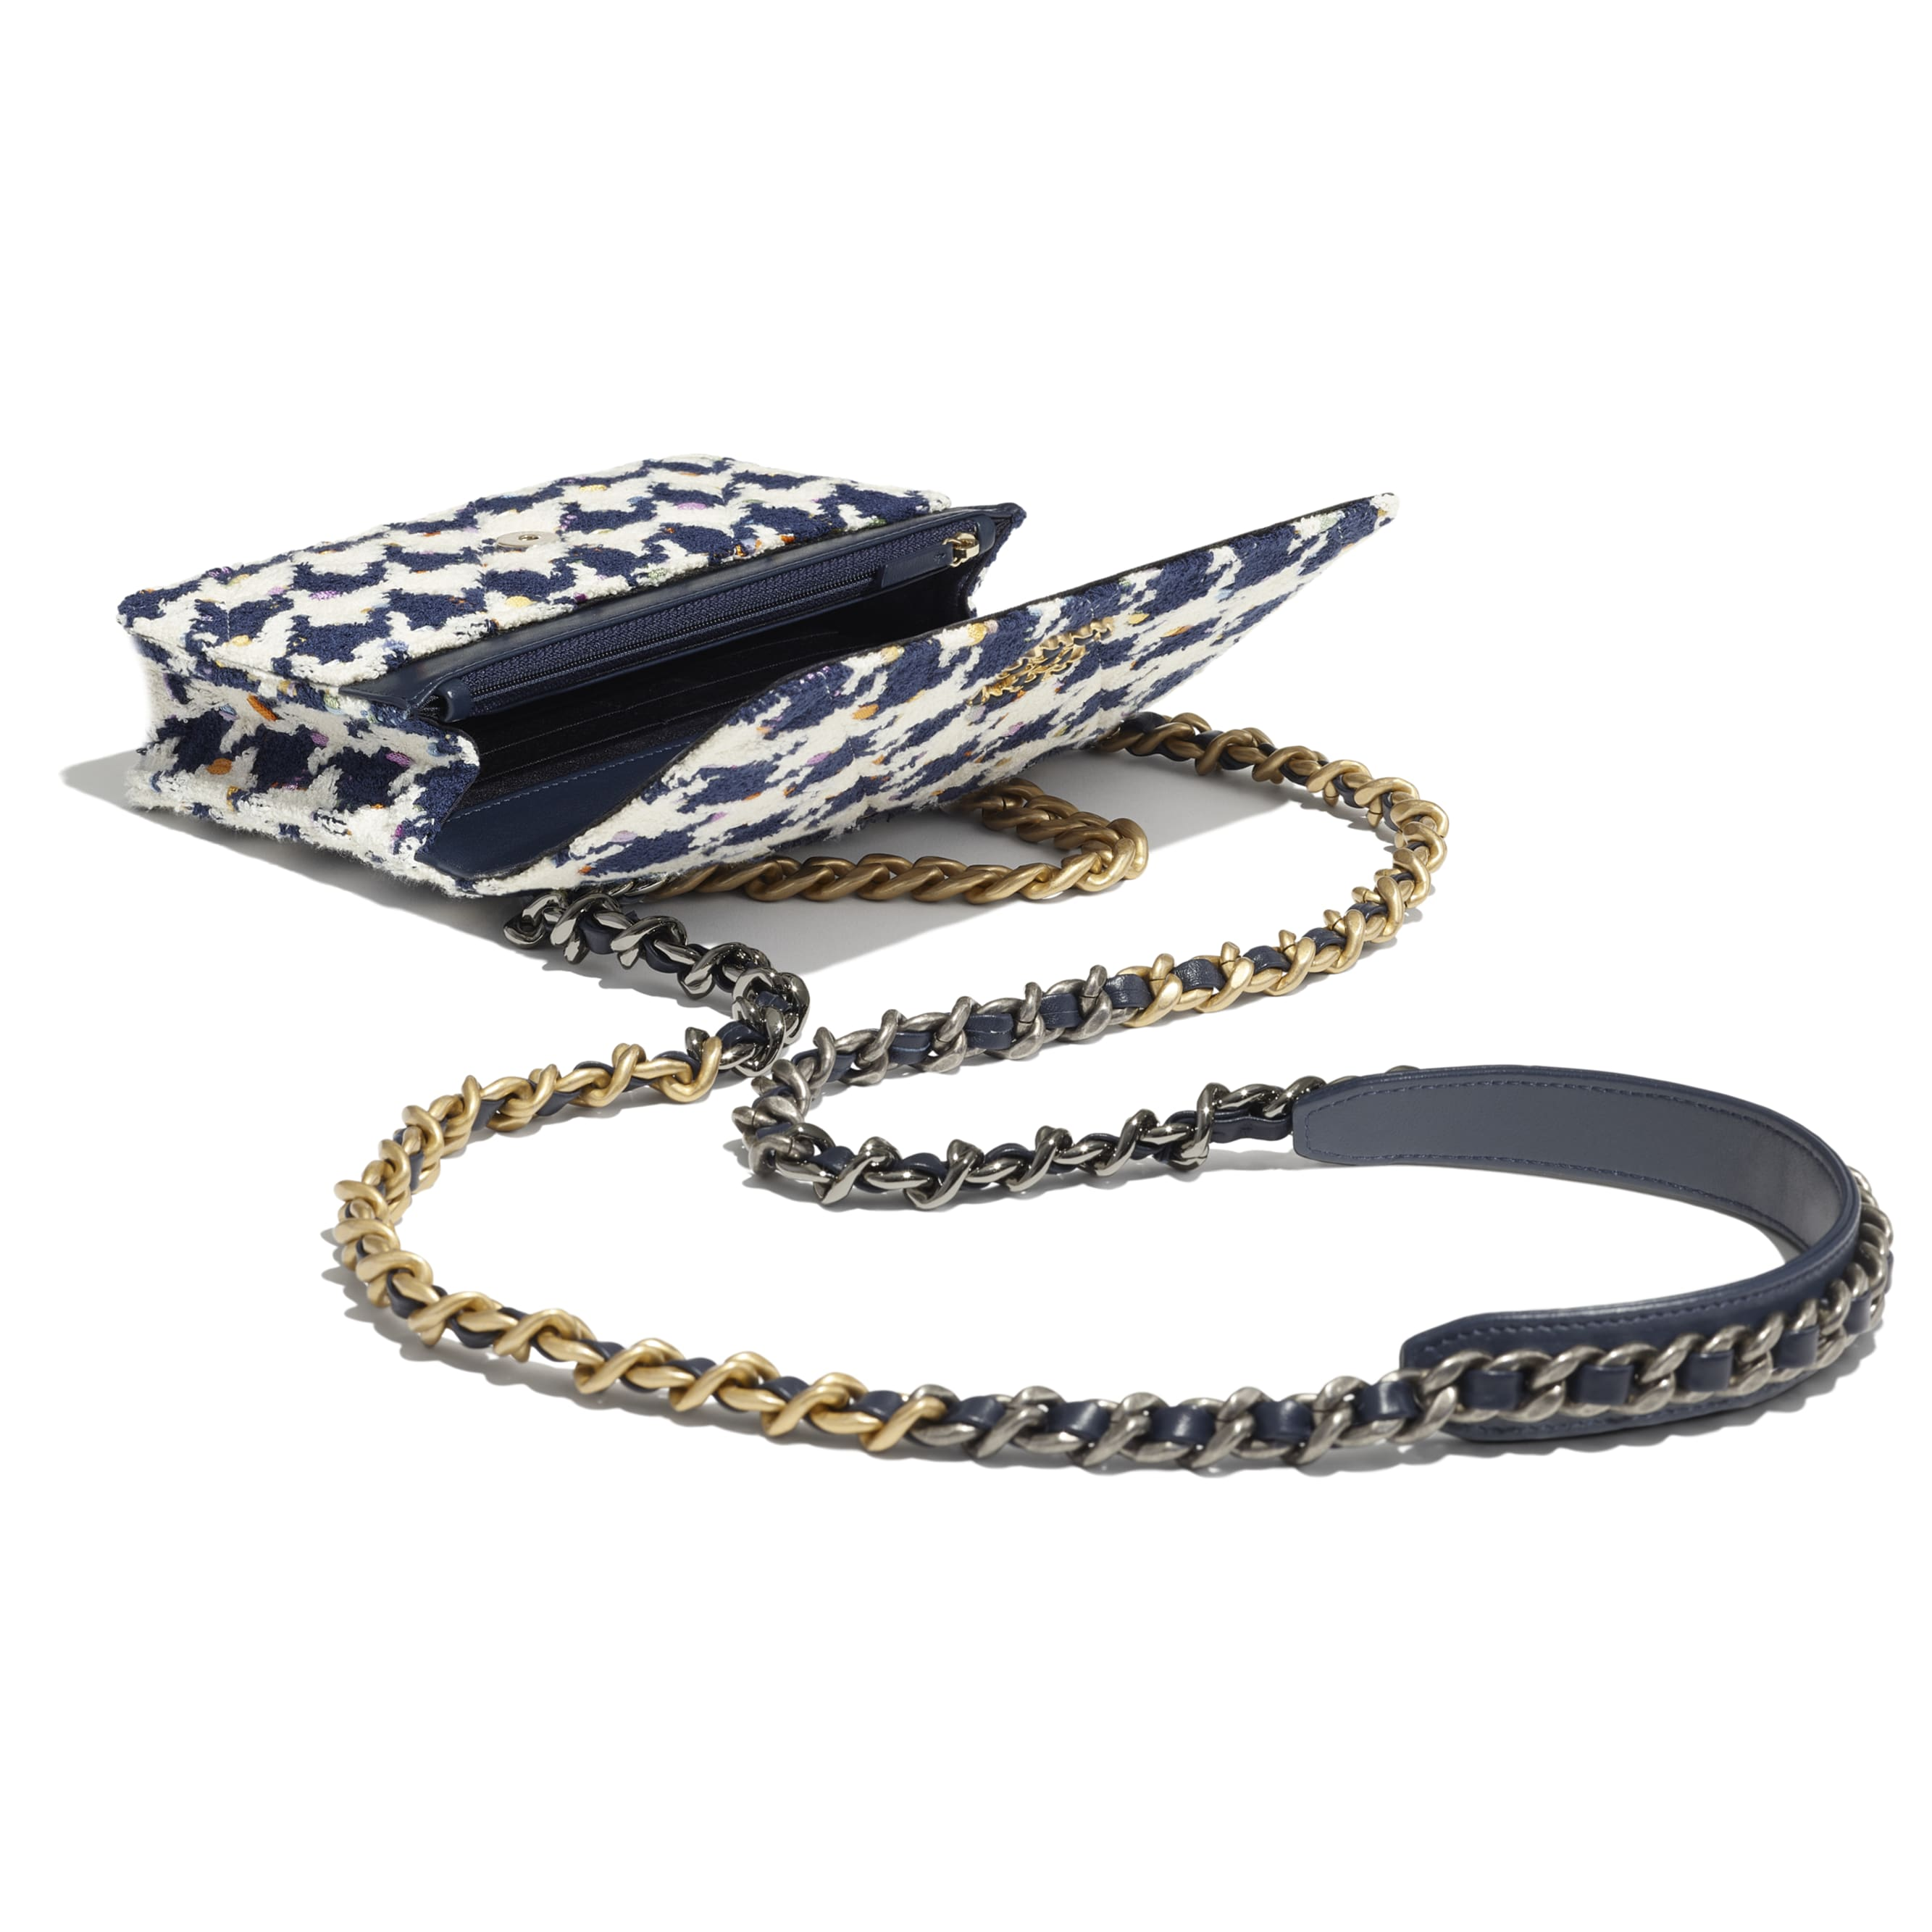 CHANEL 19 Wallet on Chain - Ecru, Navy Blue & Multicolour - Tweed, Gold-Tone, Silver-Tone & Ruthenium-Finish Metal - CHANEL - Other view - see standard sized version